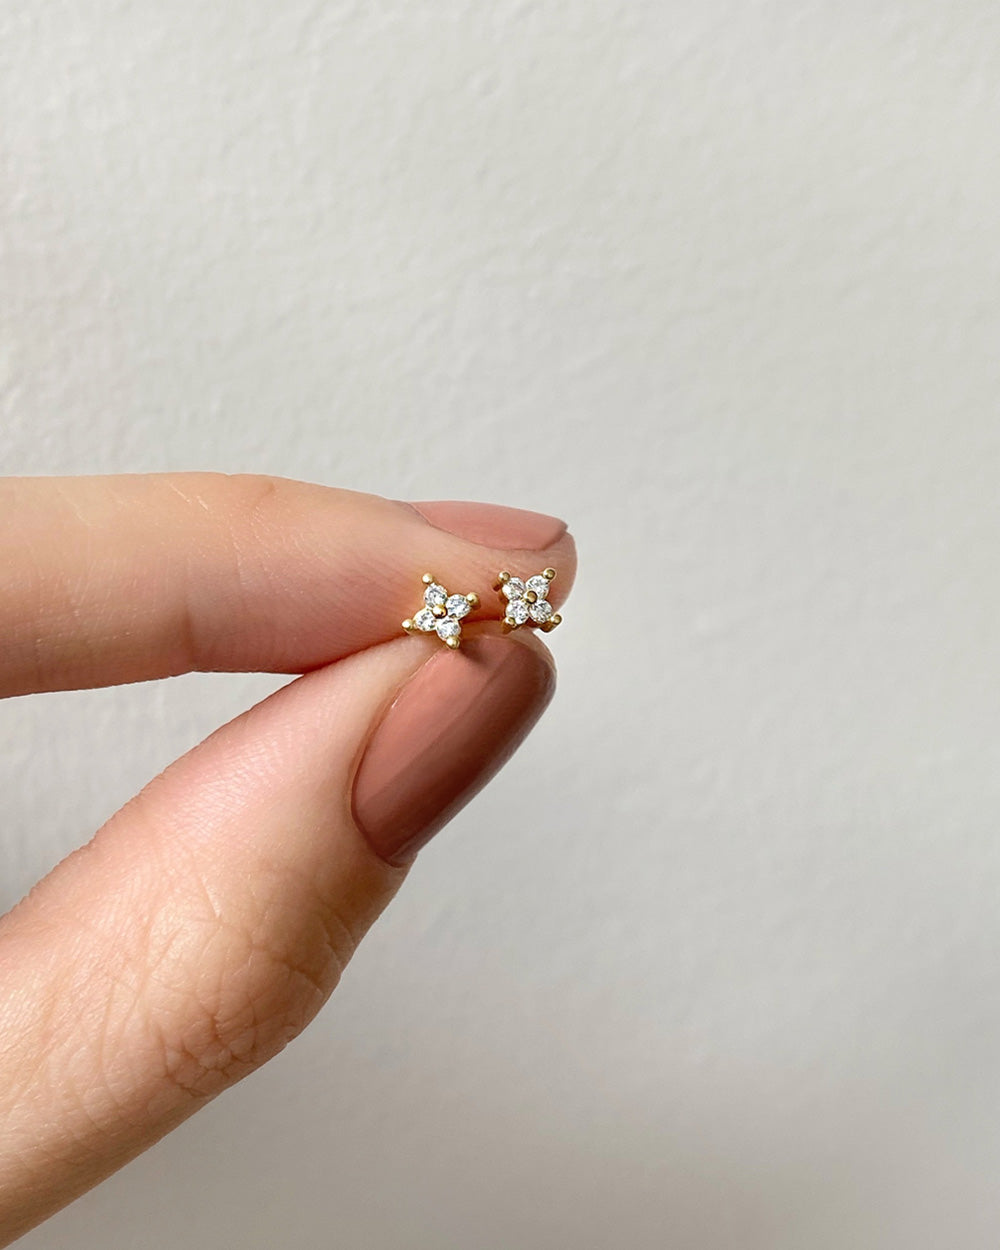 dainty minimalist jewelry for the ears